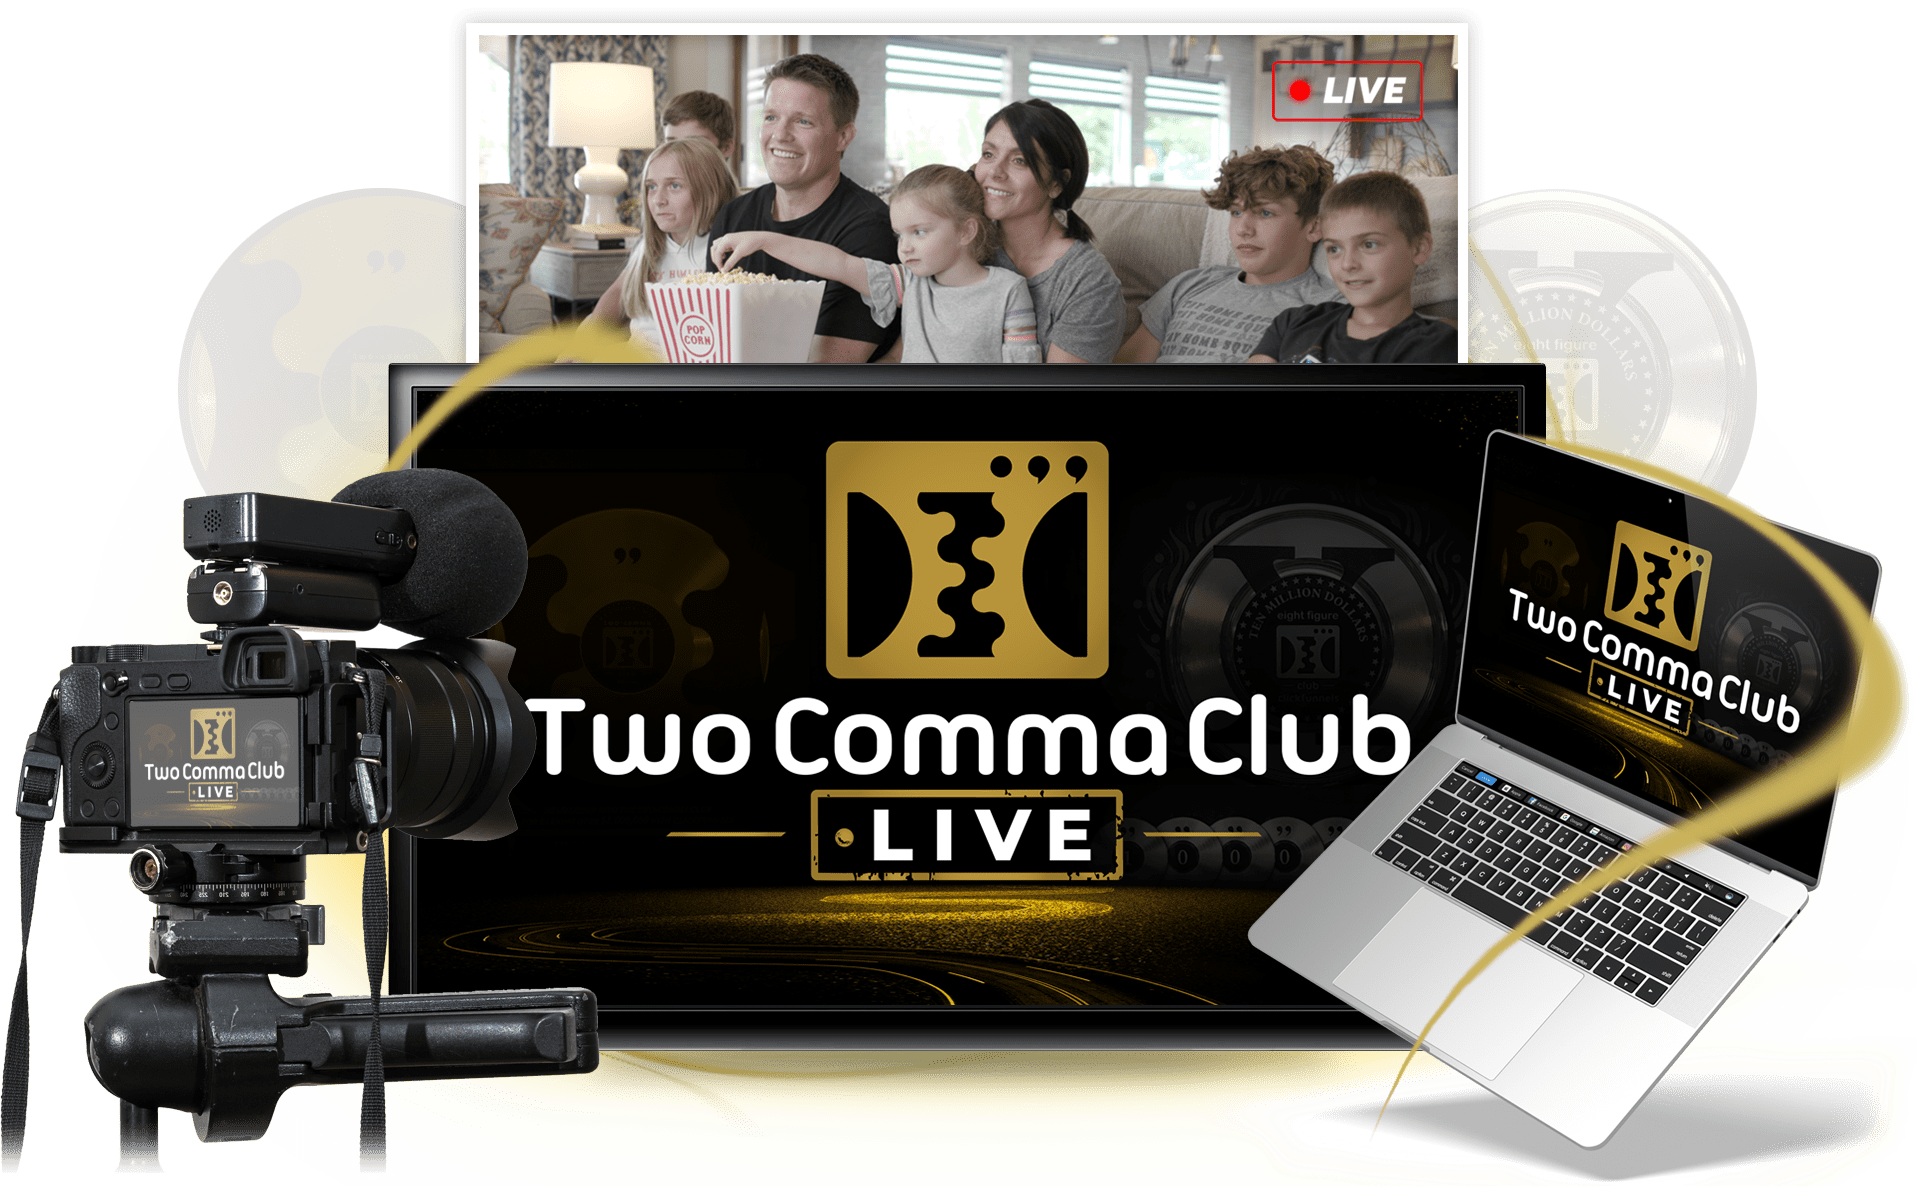 what is two comma club live